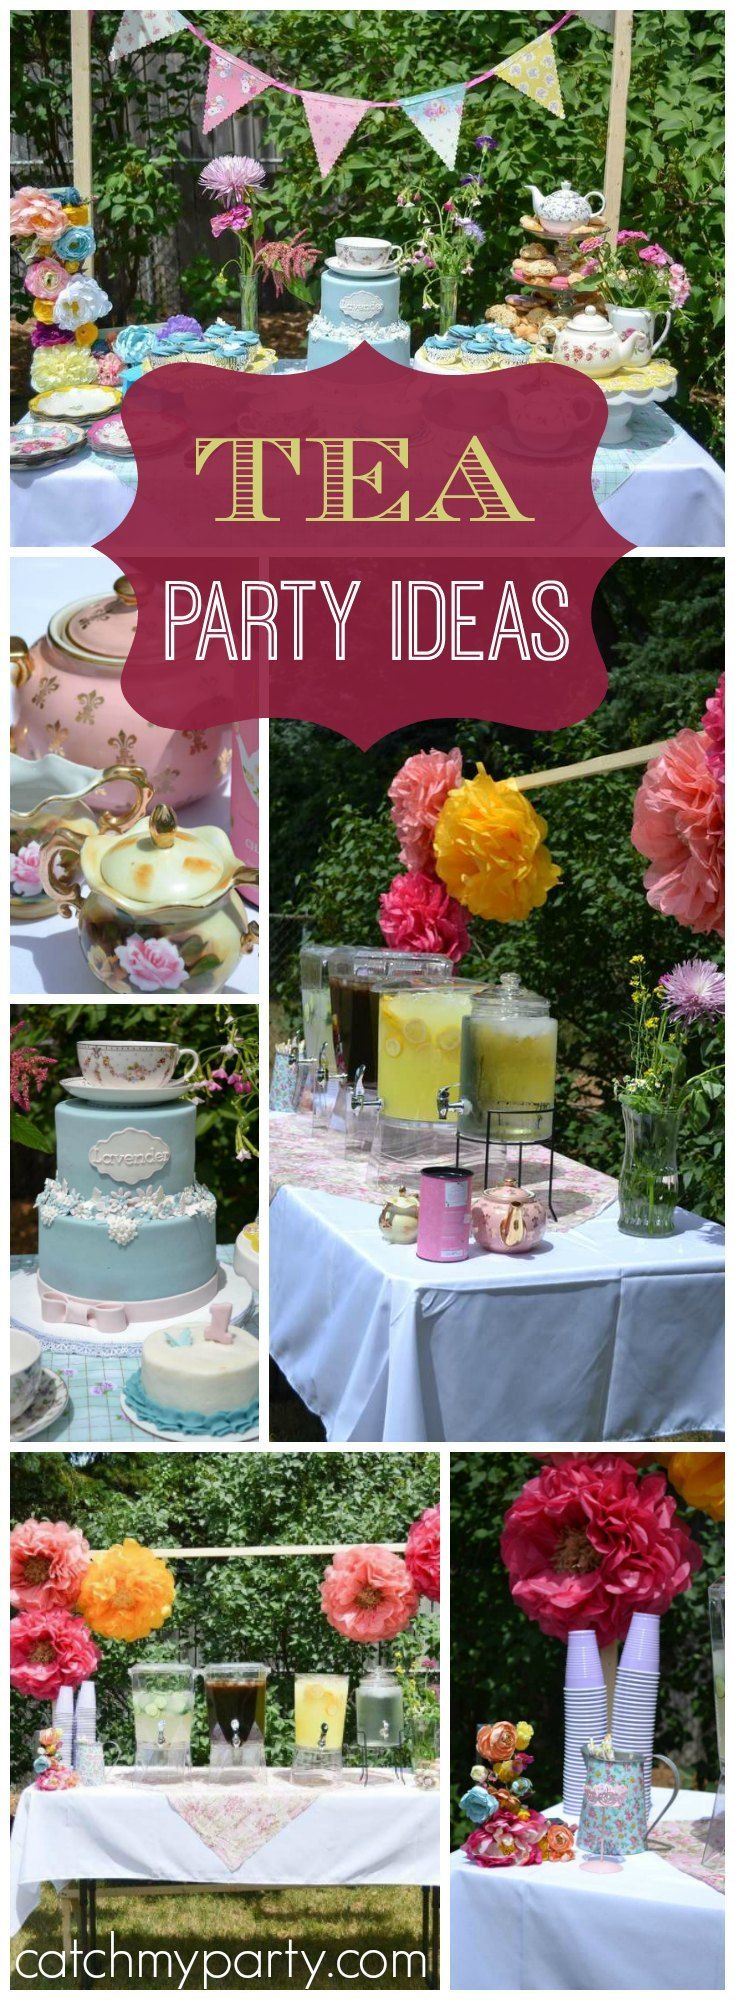 Wow! What a lovely lavender floral tea party! See more party ideas at Catchmyparty.com!